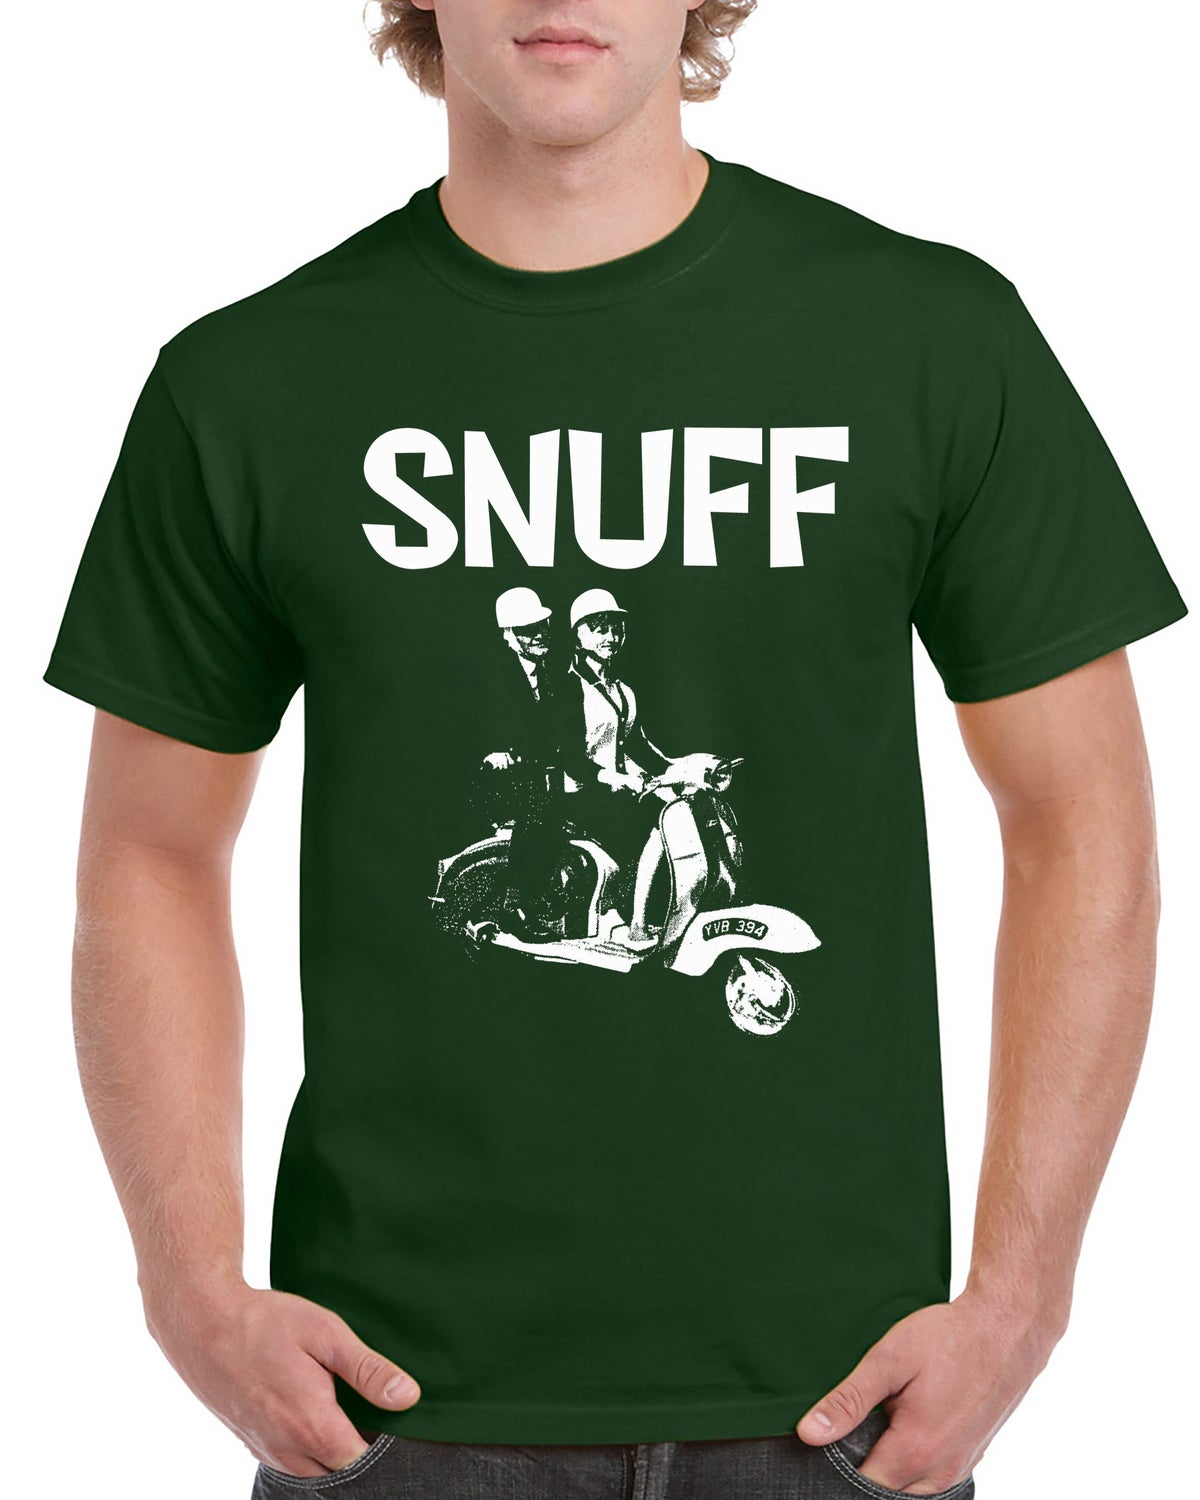 Snuff (Racing Green) 'Scooter' T-shirt